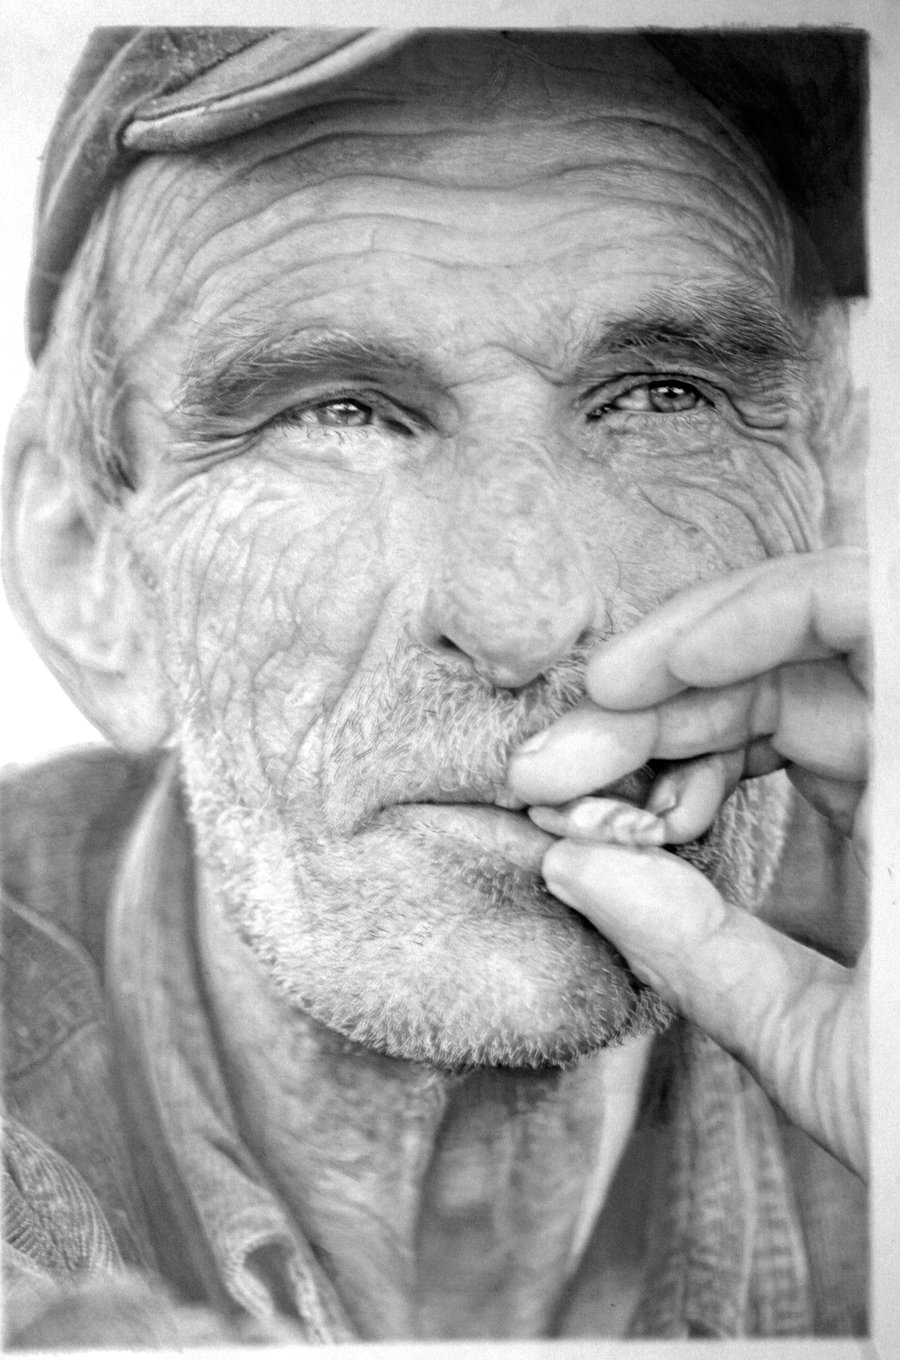 Paul+Cadden+Hyperrealistic+Drawings+%252810%2529.jpg